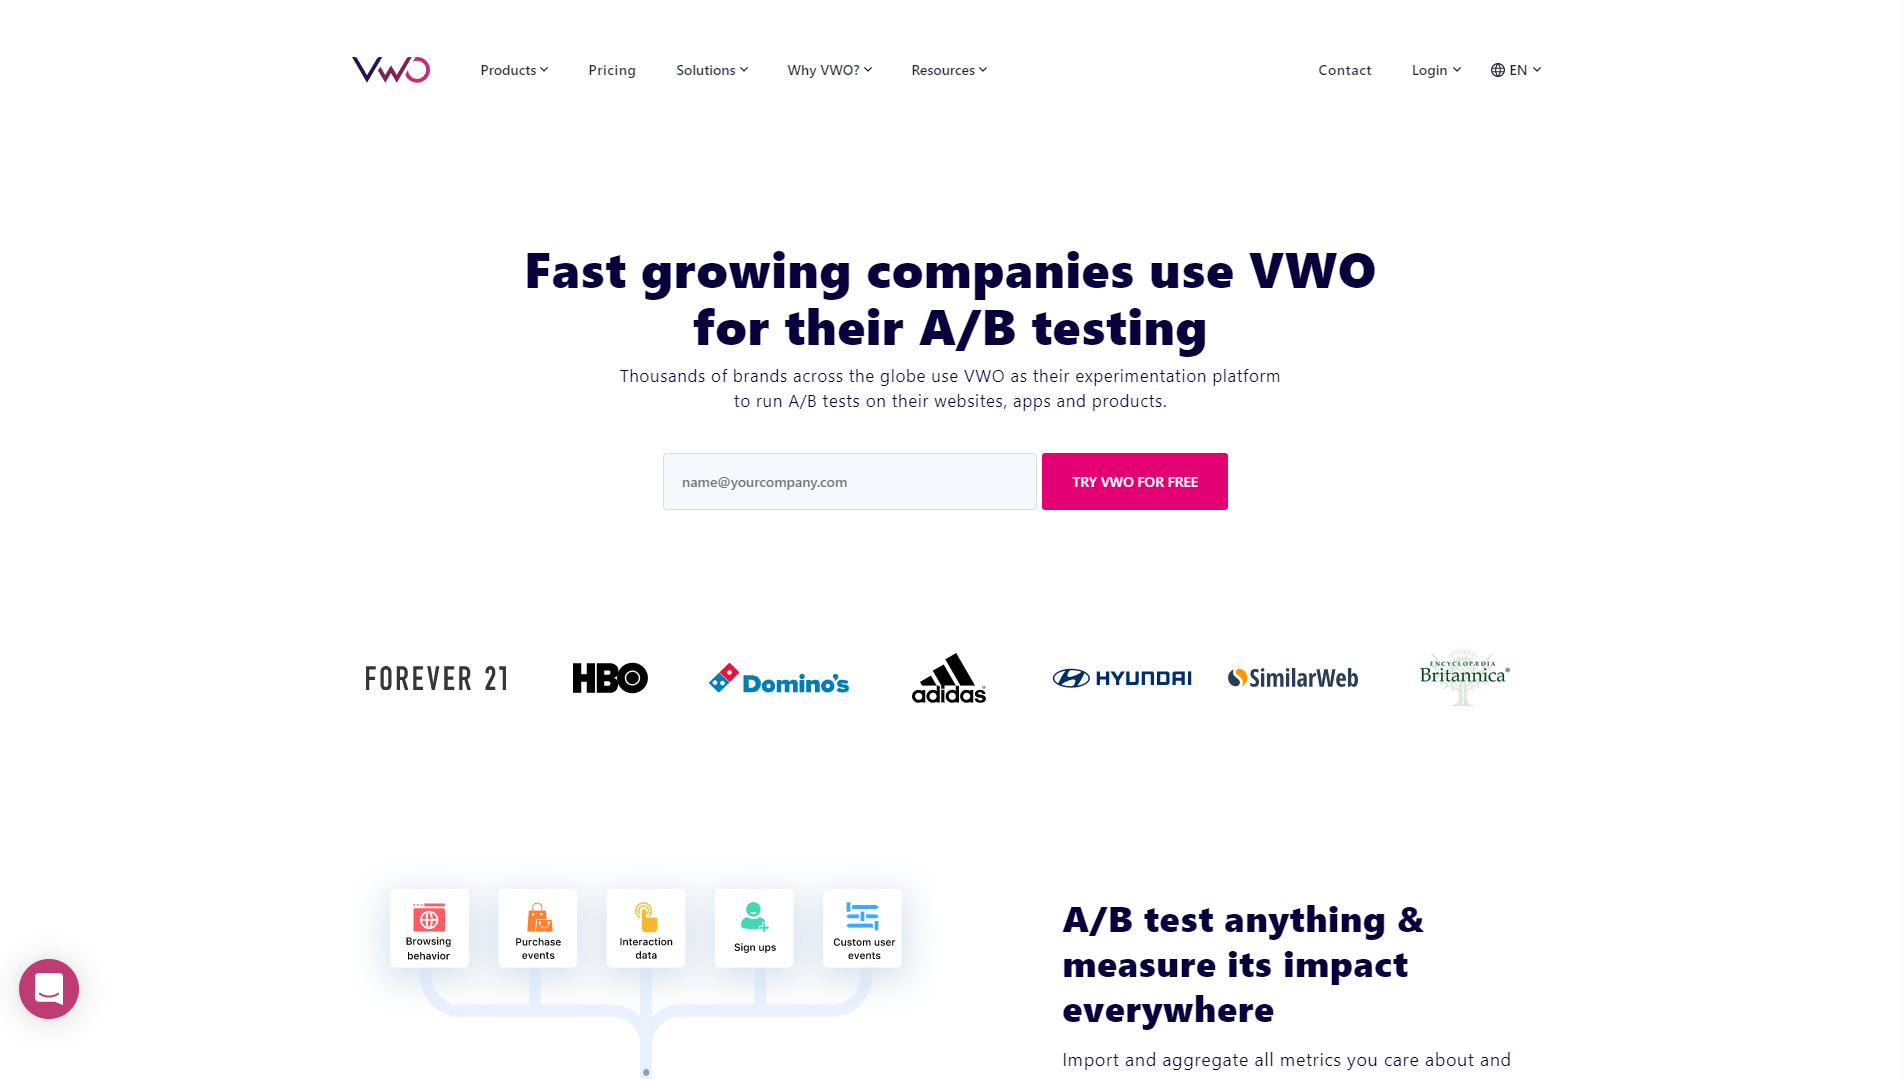 """Visual Website Optimizer (VWO) homepage with text saying """"Fast growing companies use VWO for their A/B testing."""" There's a field to input your email address to try VWO for free, logos of brands that use the product like Forever 21, HBO, and Domino's. Towards the bottom it says """"A/B test anything and measure its impact everywhere"""" beside a graphic that shows testing for browsing behavior, purchase events, sign ups, and more."""